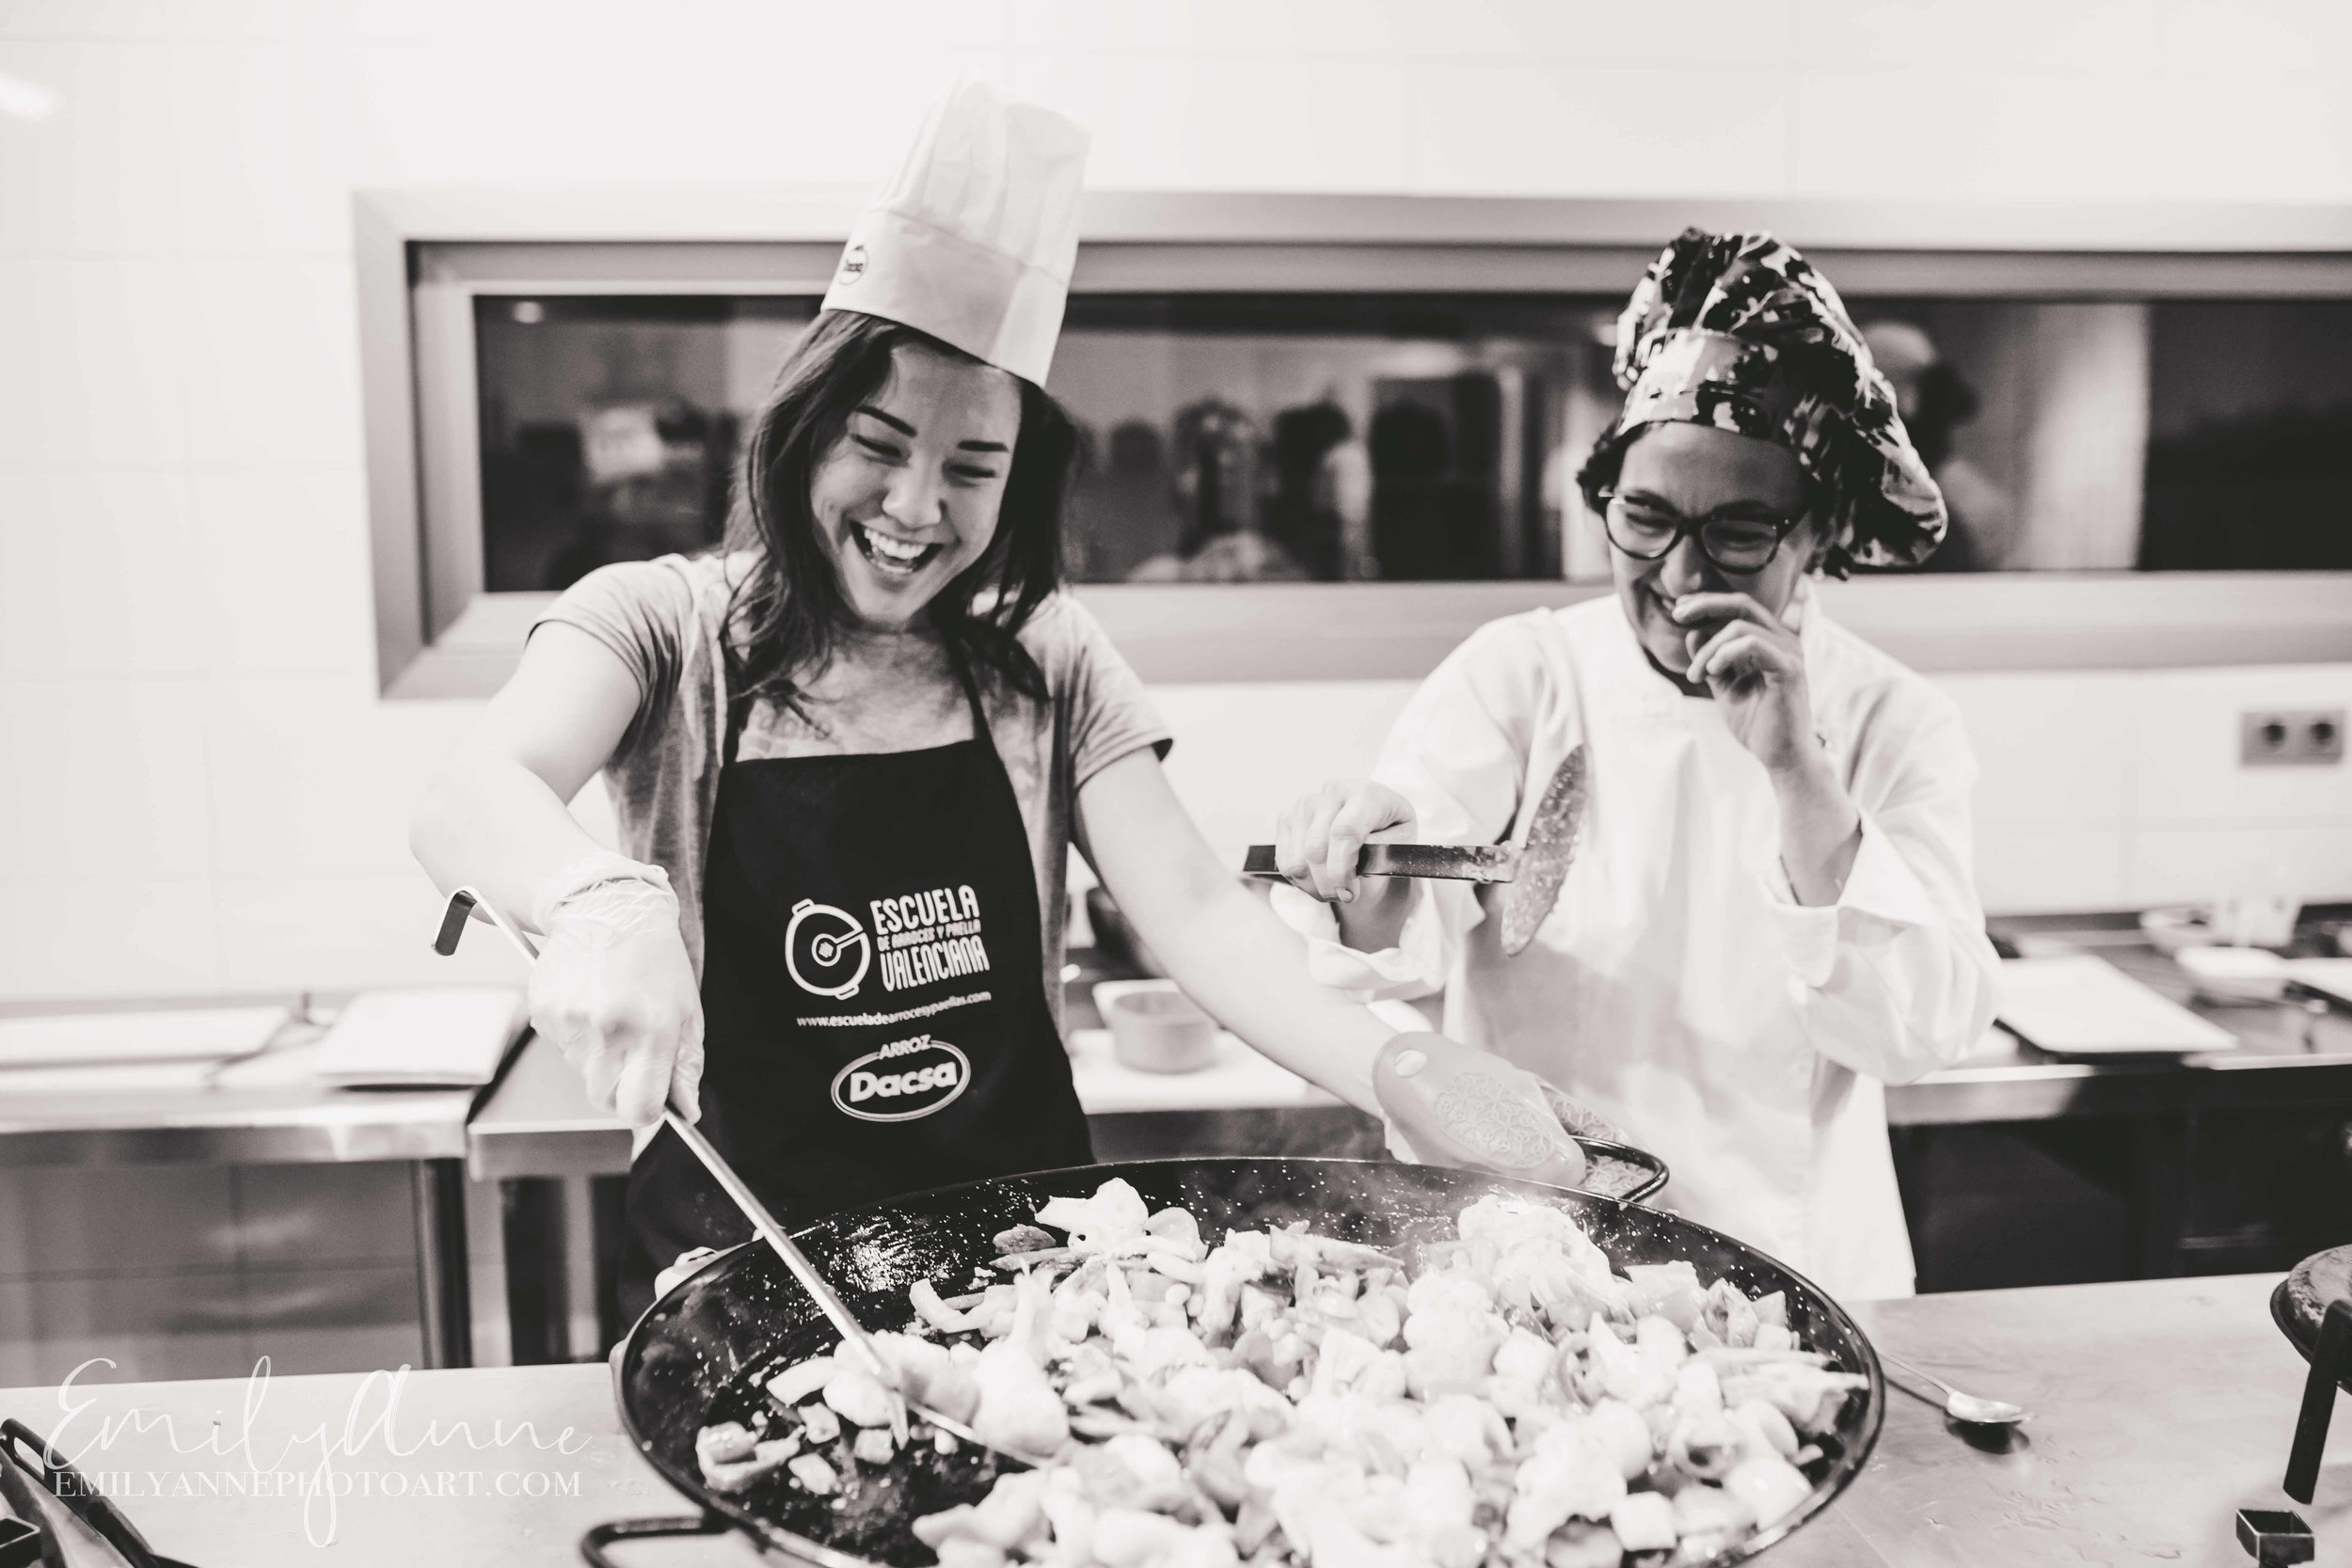 best candid cooking pictures Europe cooking class in valencia Spain by Barcelona Nashville portrait photographer Emily Anne photo Art